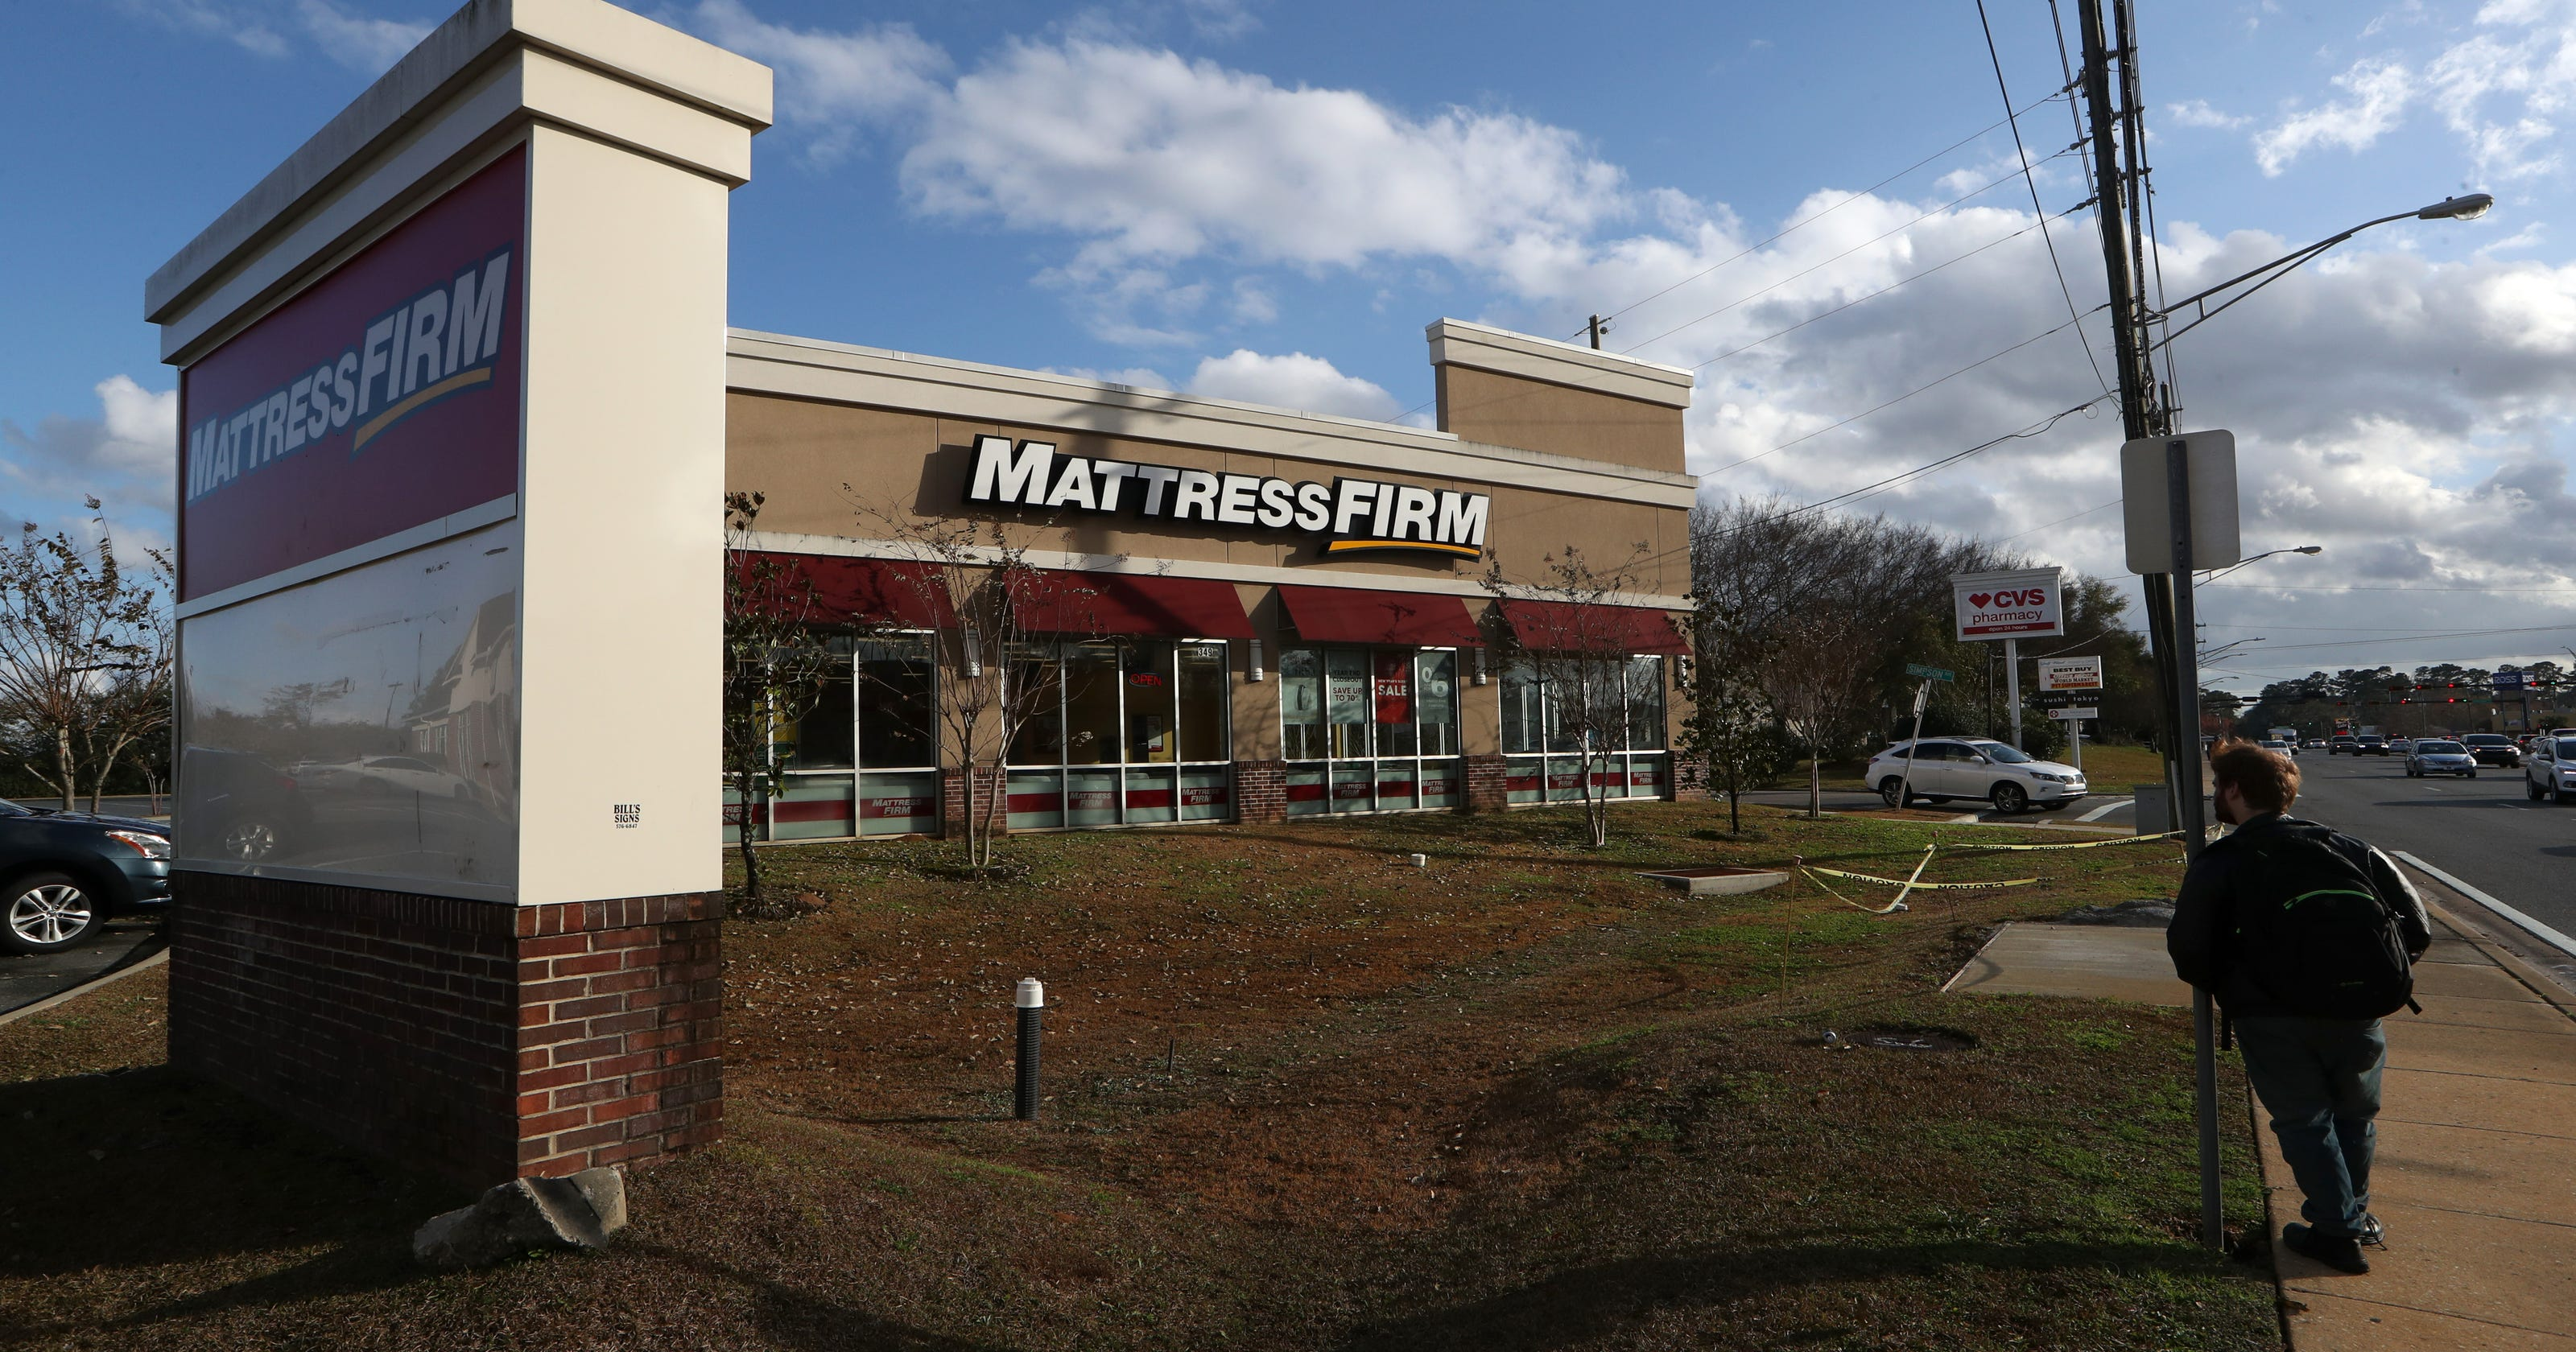 Why so many mattress stores and car washes in Tallahassee?